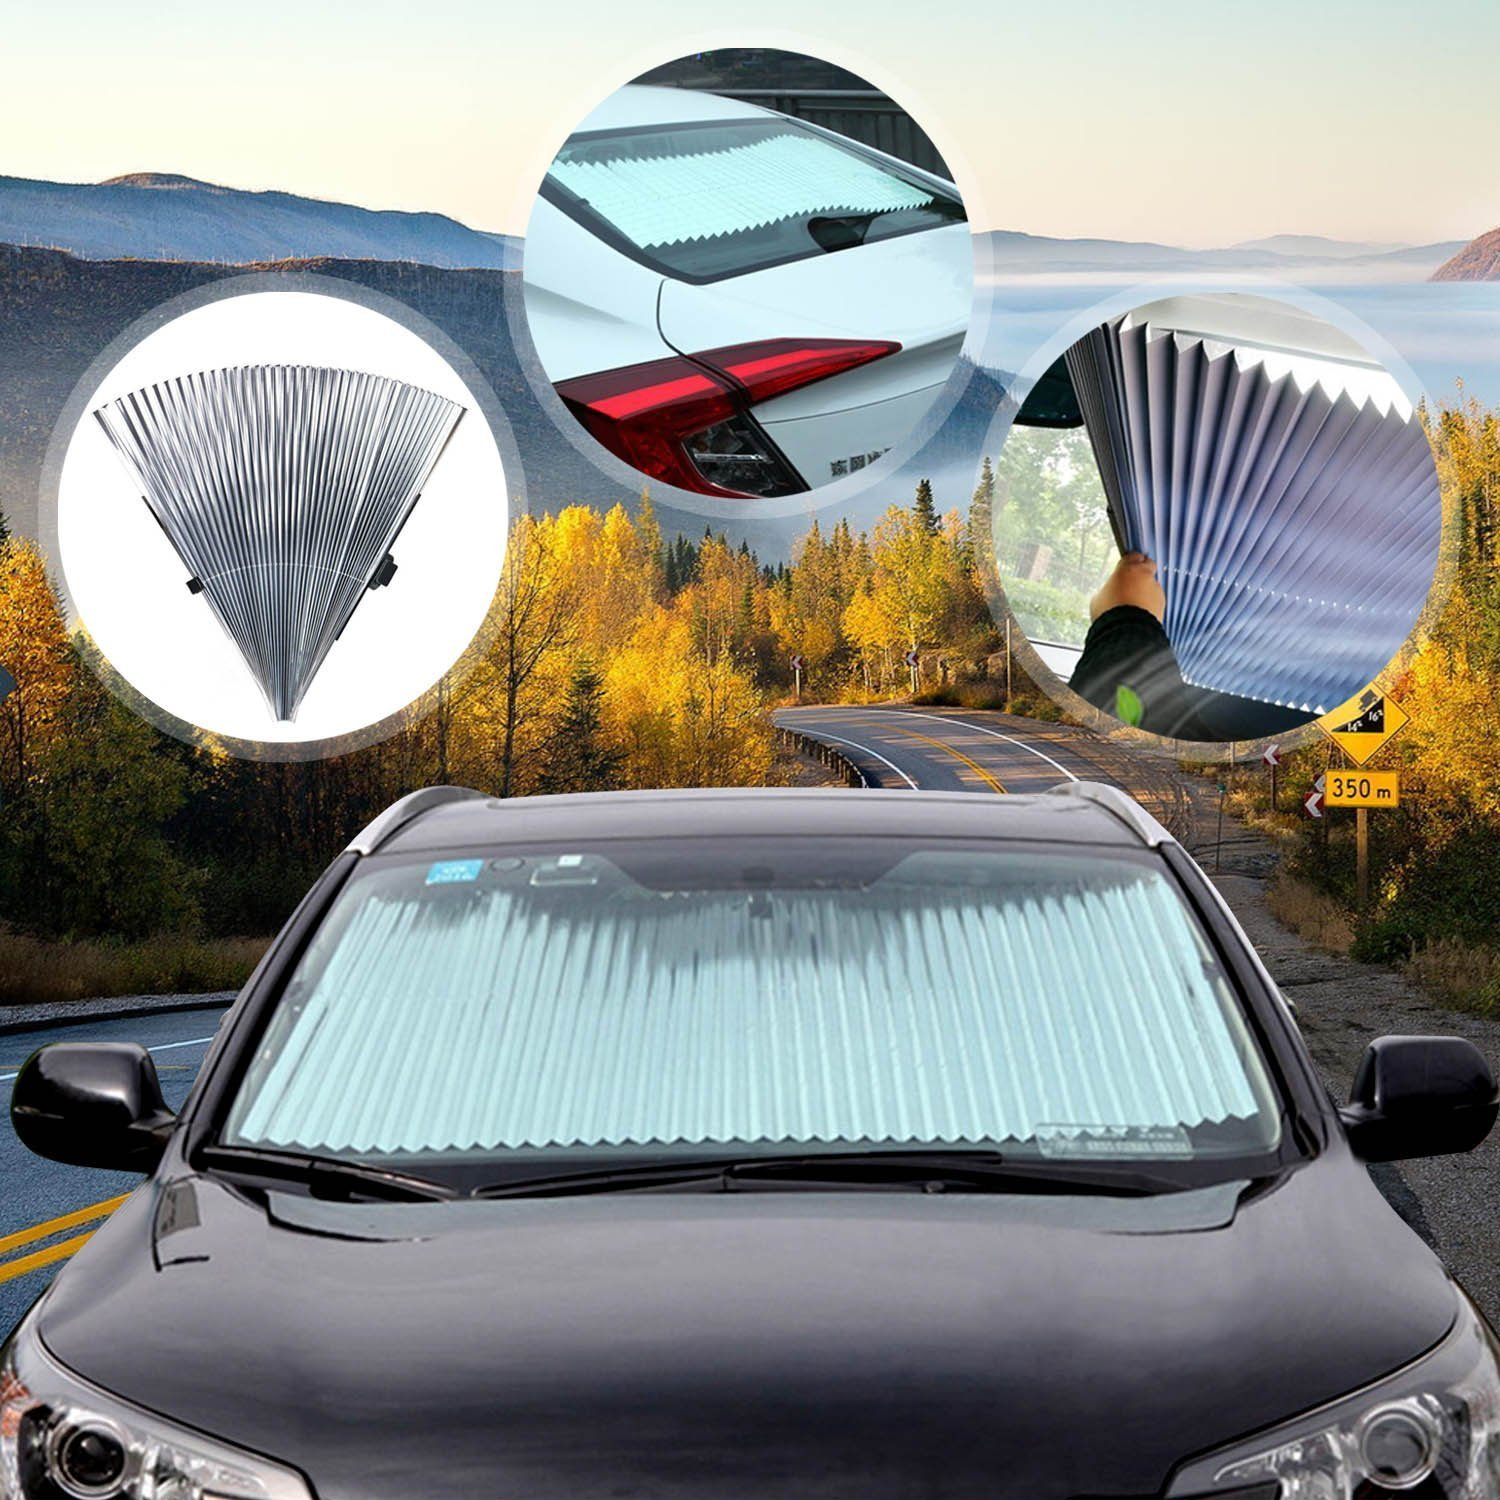 FLY5D Universal Fit Car Windshield Glass Sun Shade Sunlight Protection UV Cover Set DIY Keep Vehicle Cool Block Sunshade Cover Front Retractable